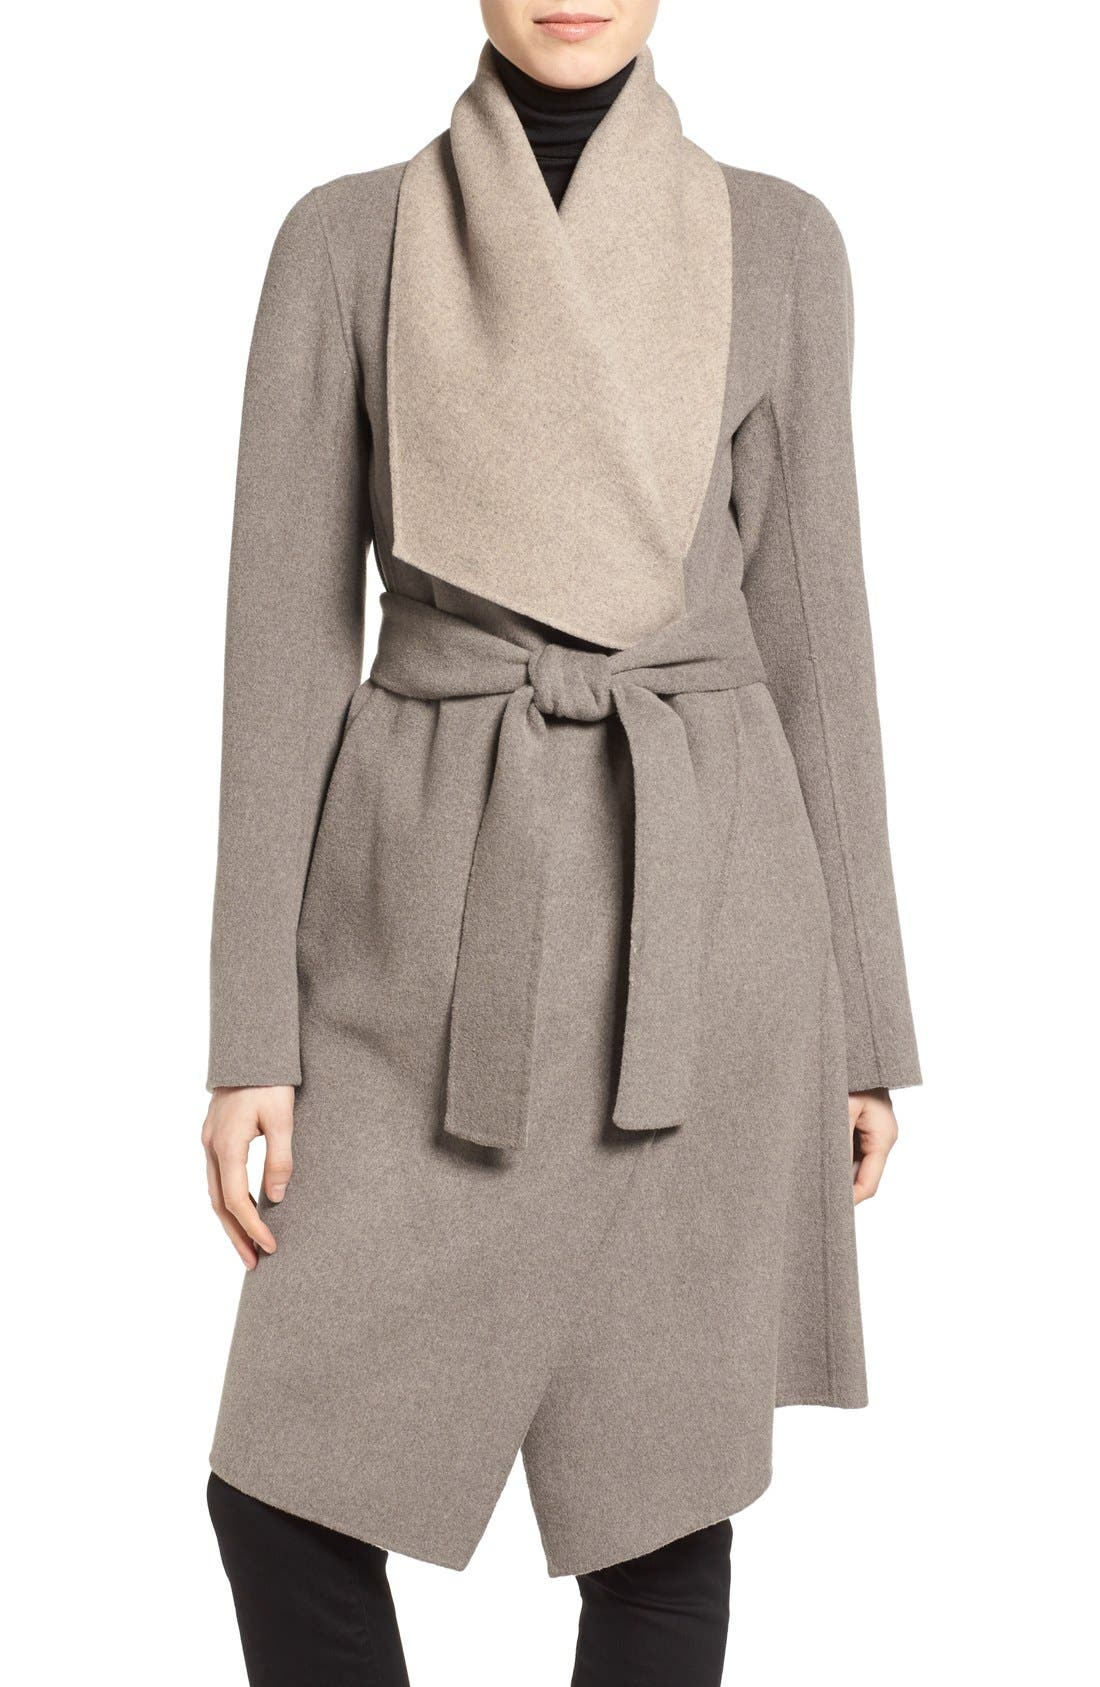 Alternate Image 1 Selected - Diane von Furstenberg Reversible Double Face Wrap Coat